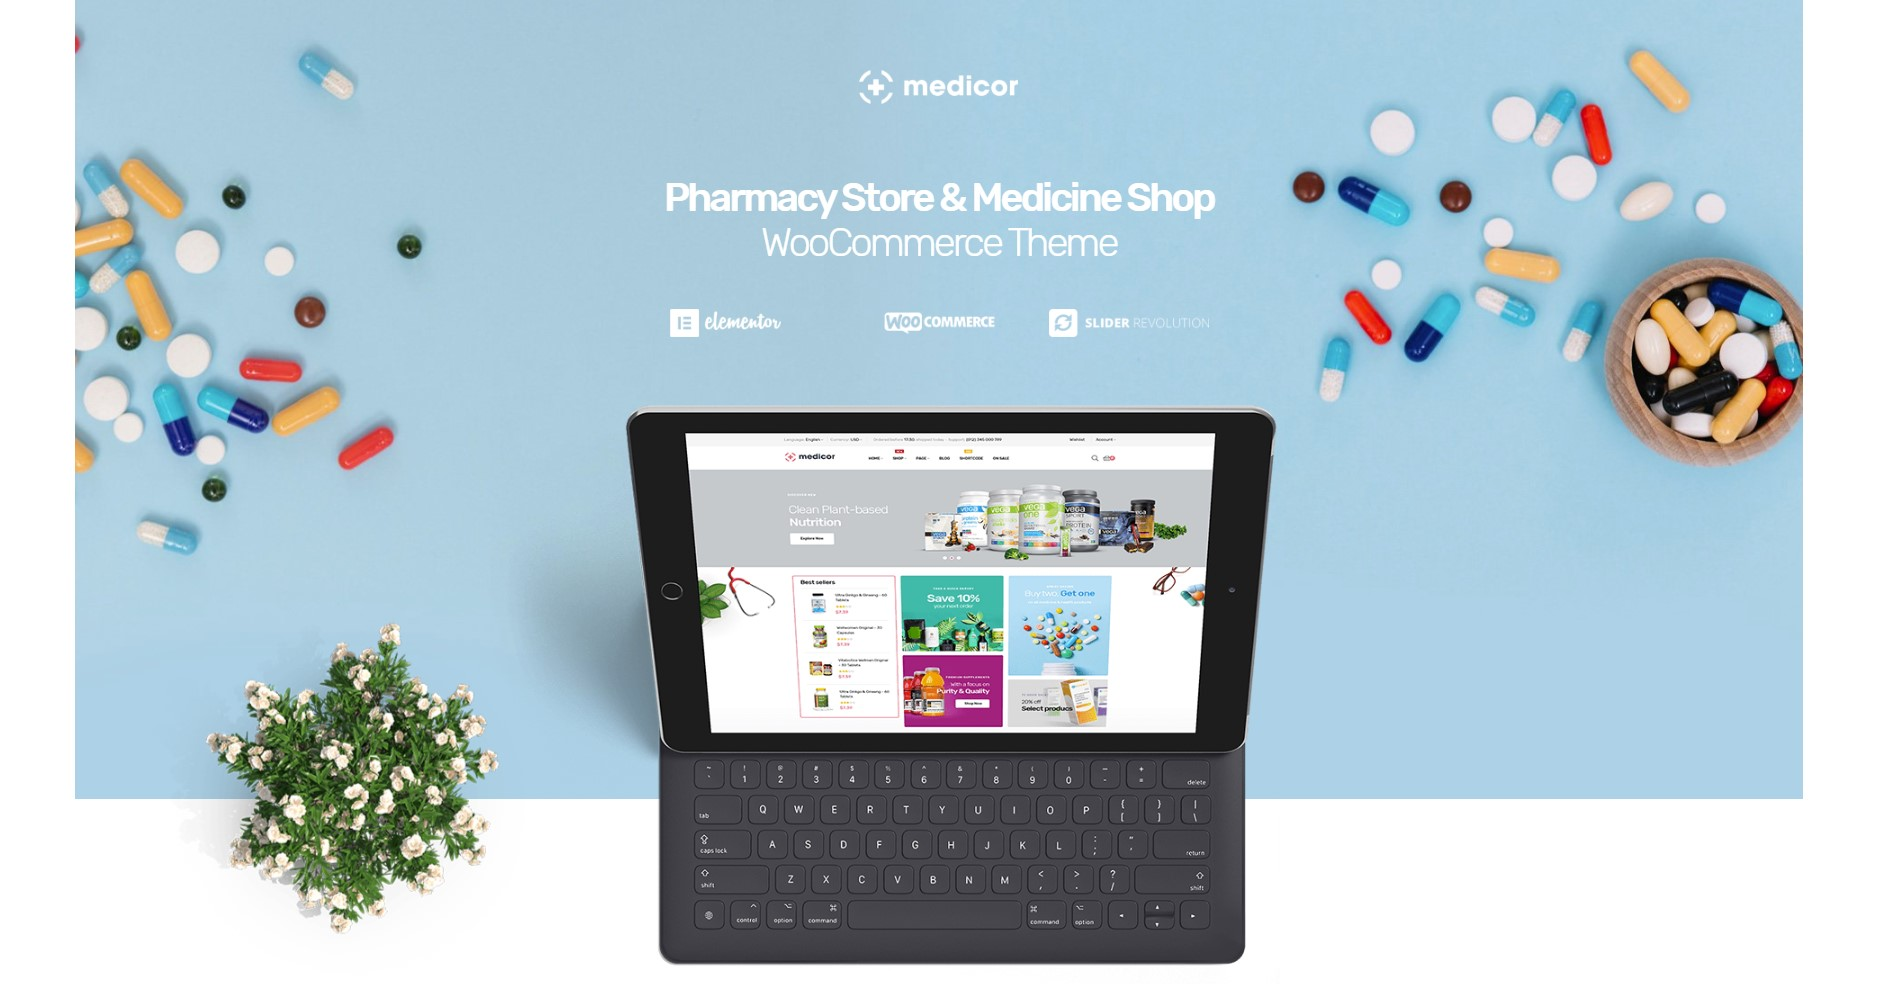 Medicor - Medicine & Pharmacy Store WordPress Theme